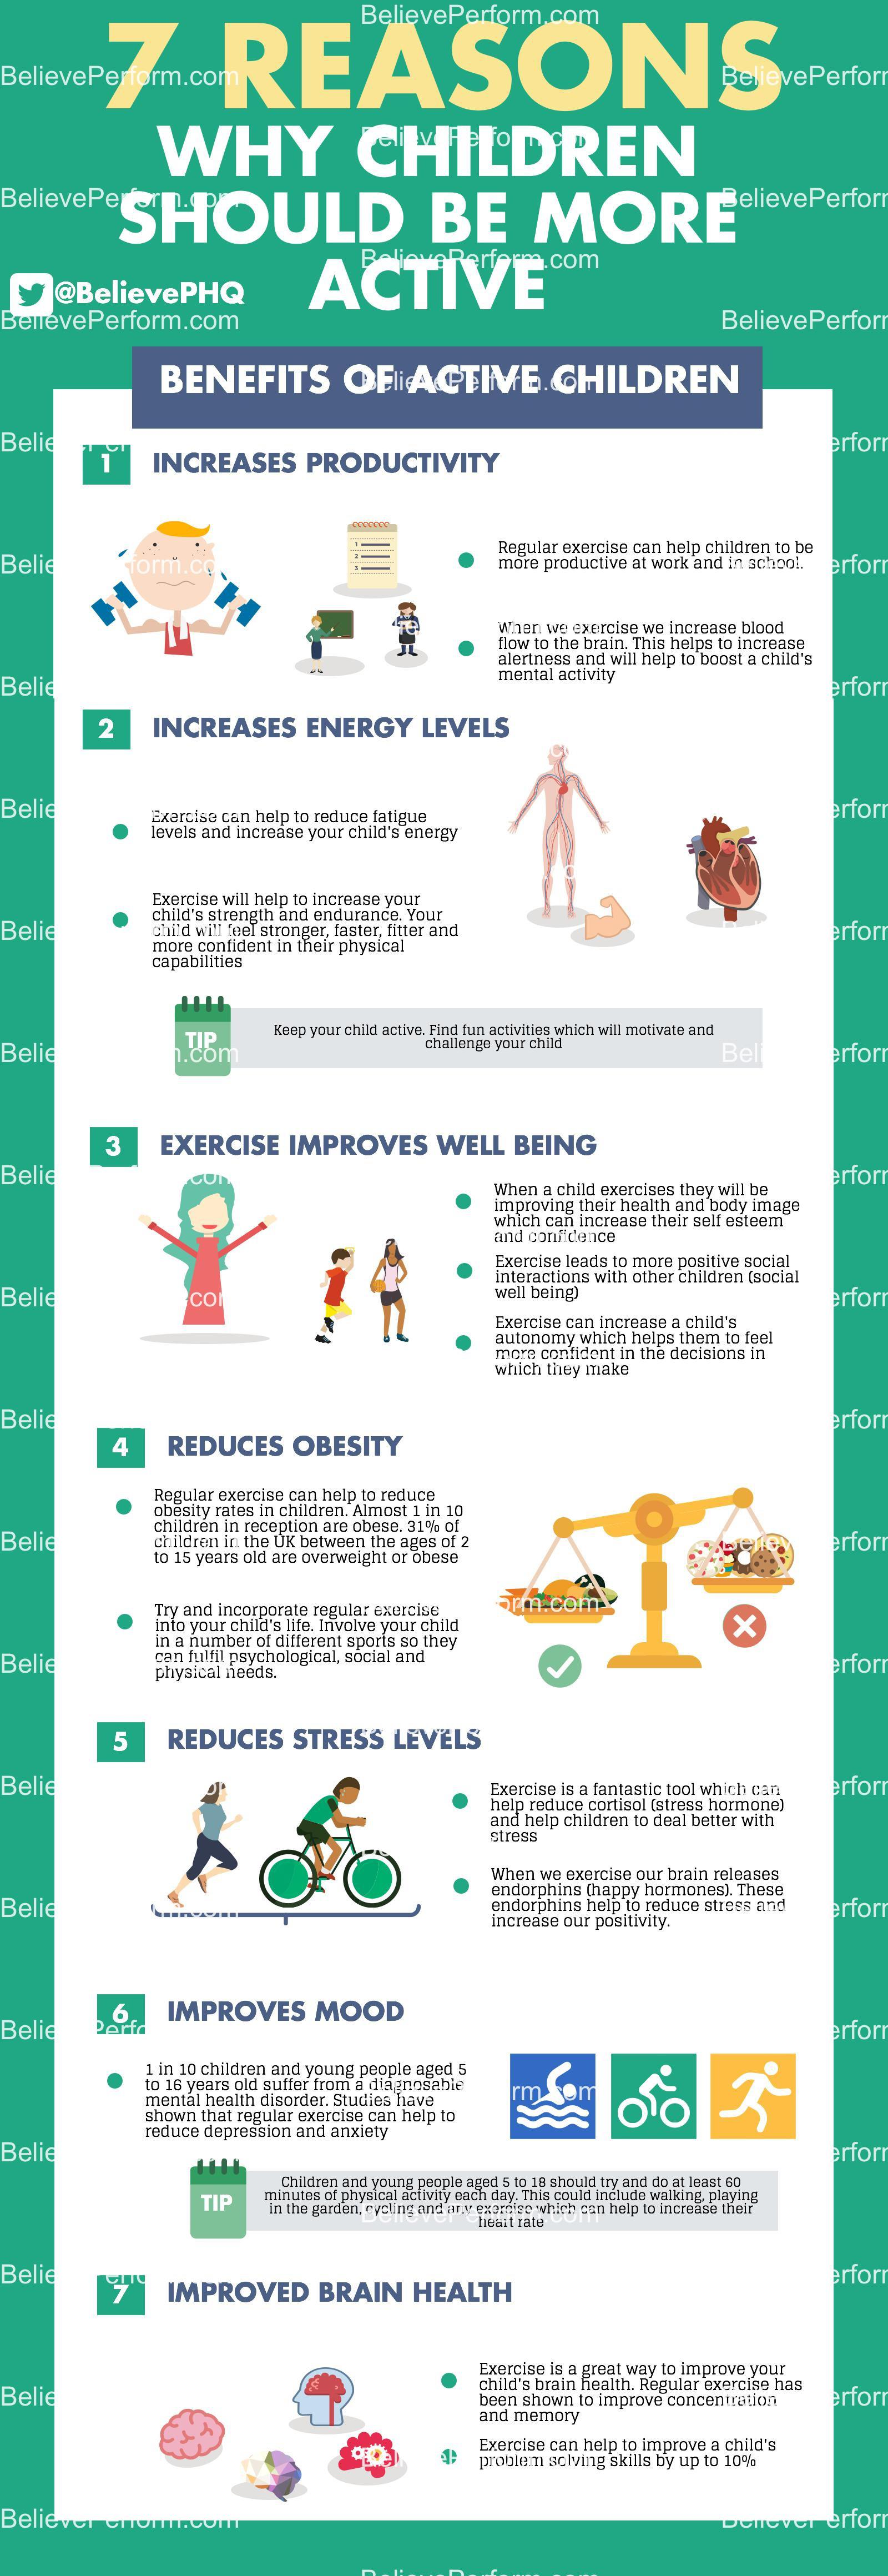 7 reasons why children should be more active